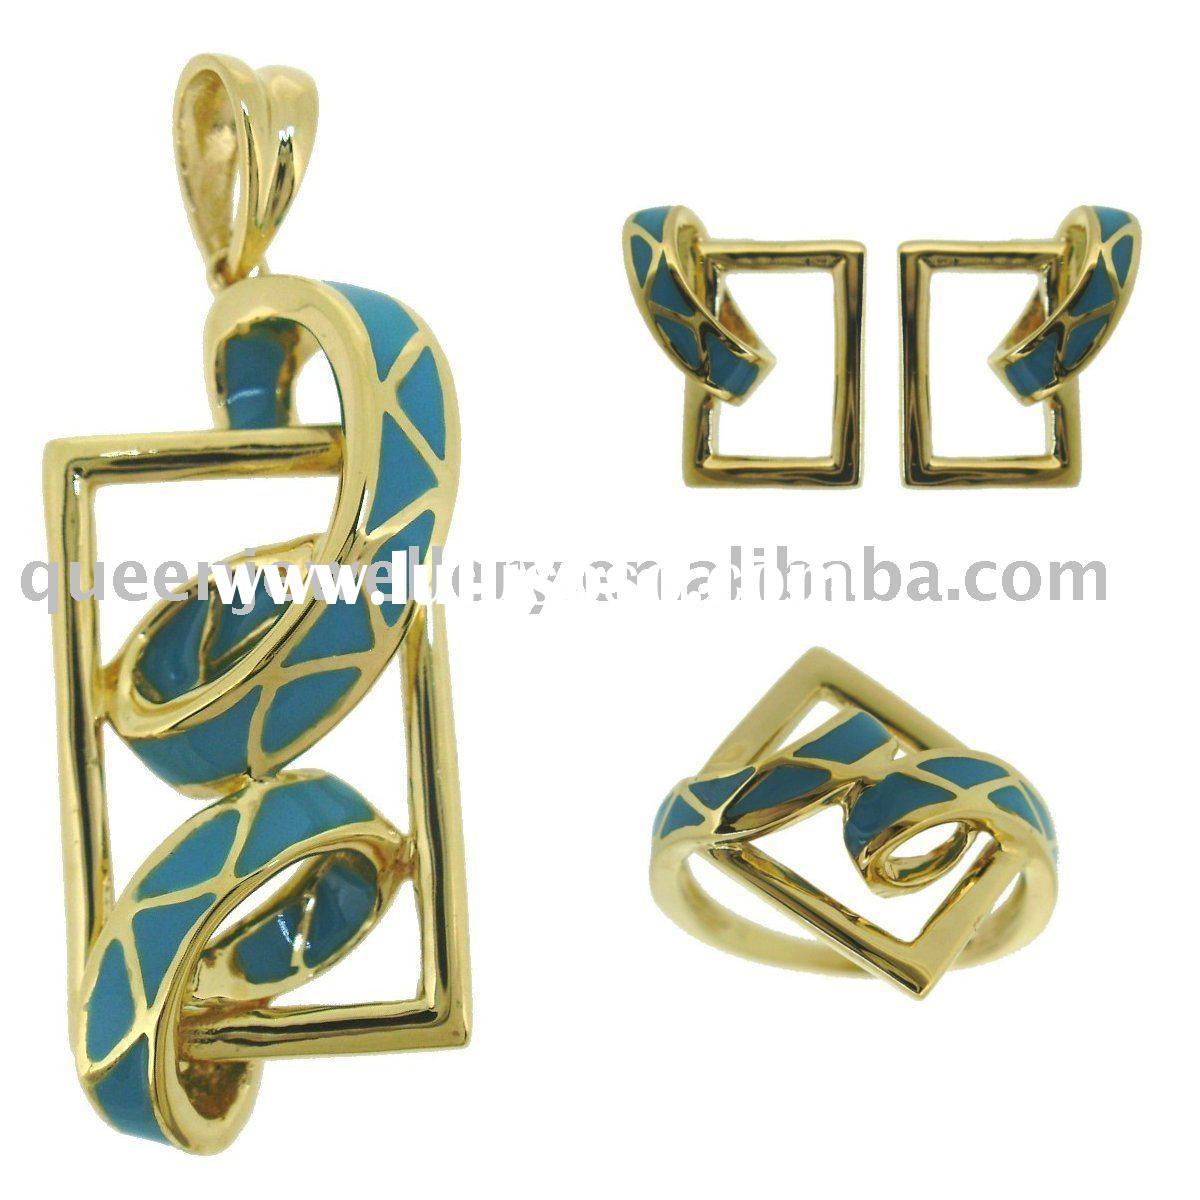 18k solid gold jewelry with turquois enamel QMH016 wholesale direct manufacturer. high class fashion